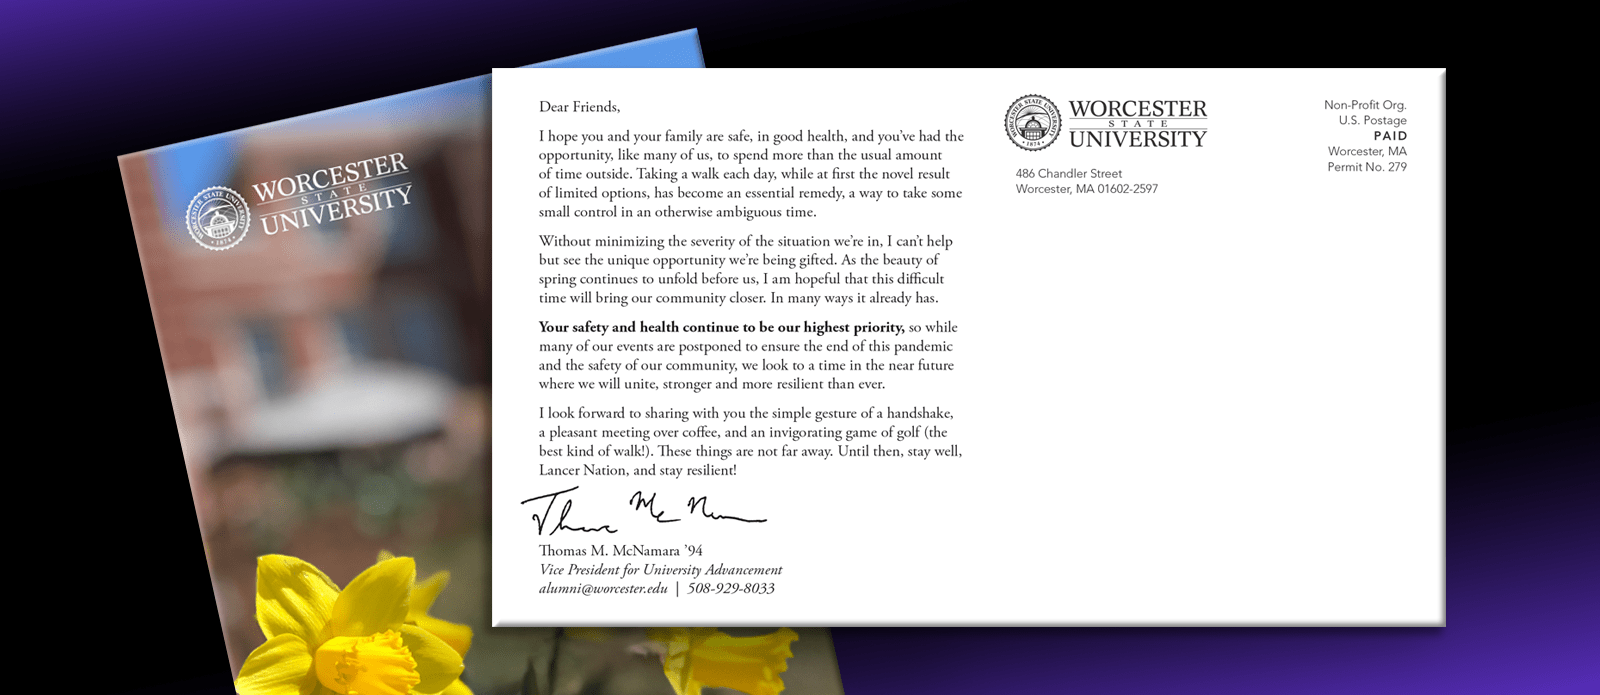 Worchester State University Postcard from Vice President Thomas McNamara